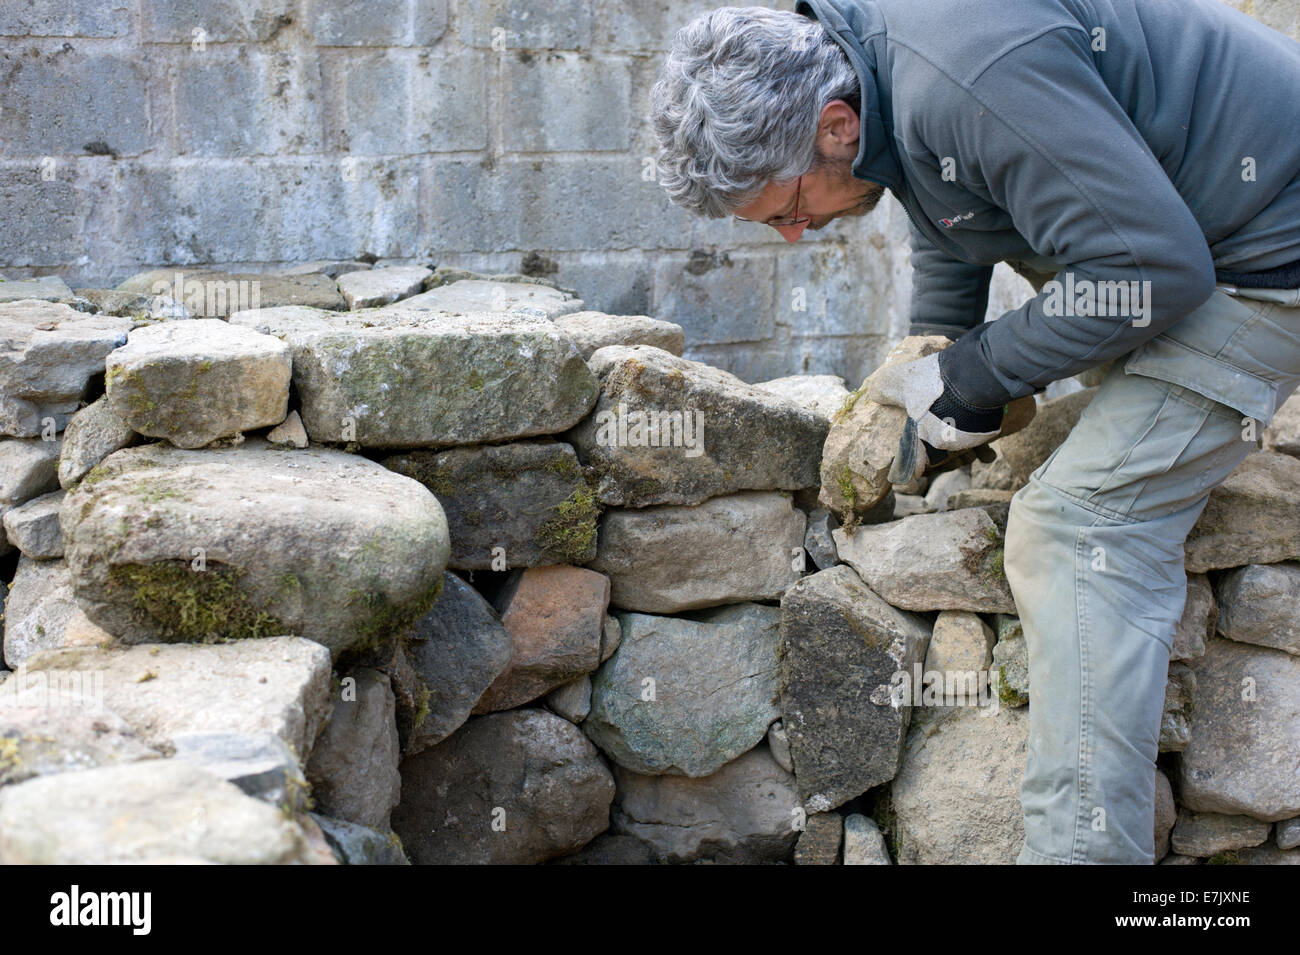 Preparatory work for building an earth oven. Building the dry ...